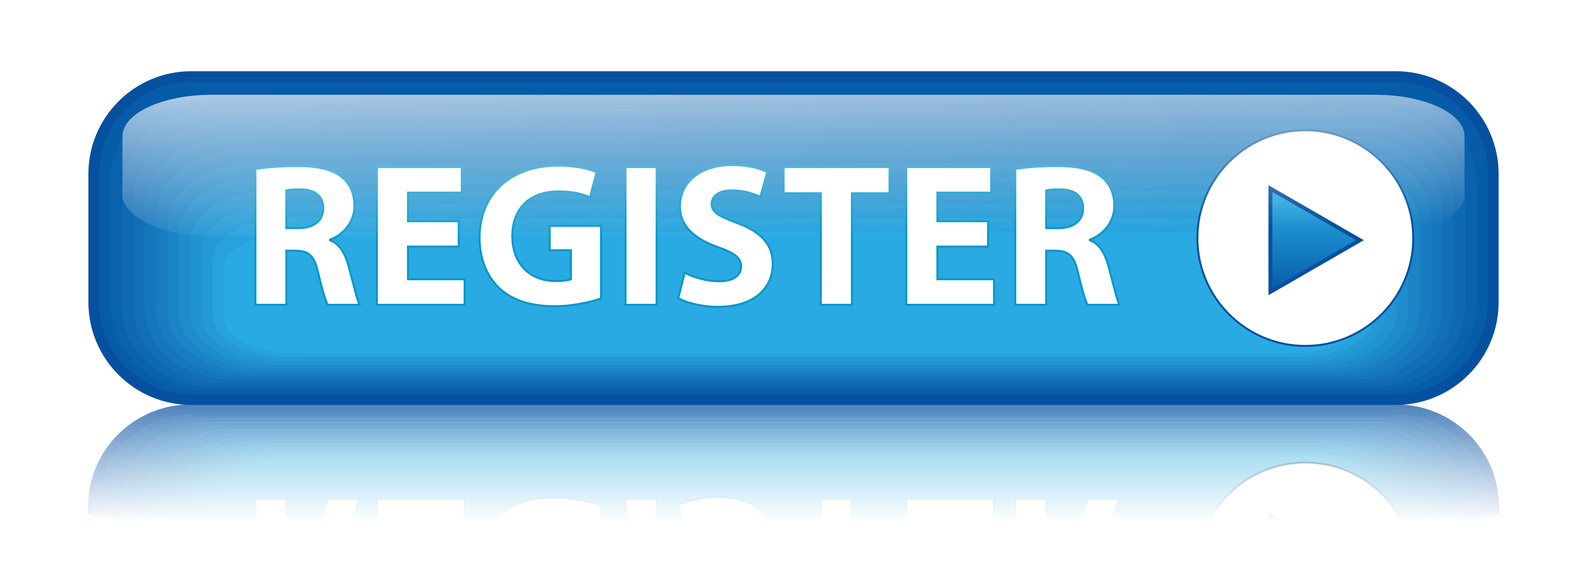 Registration Button 3